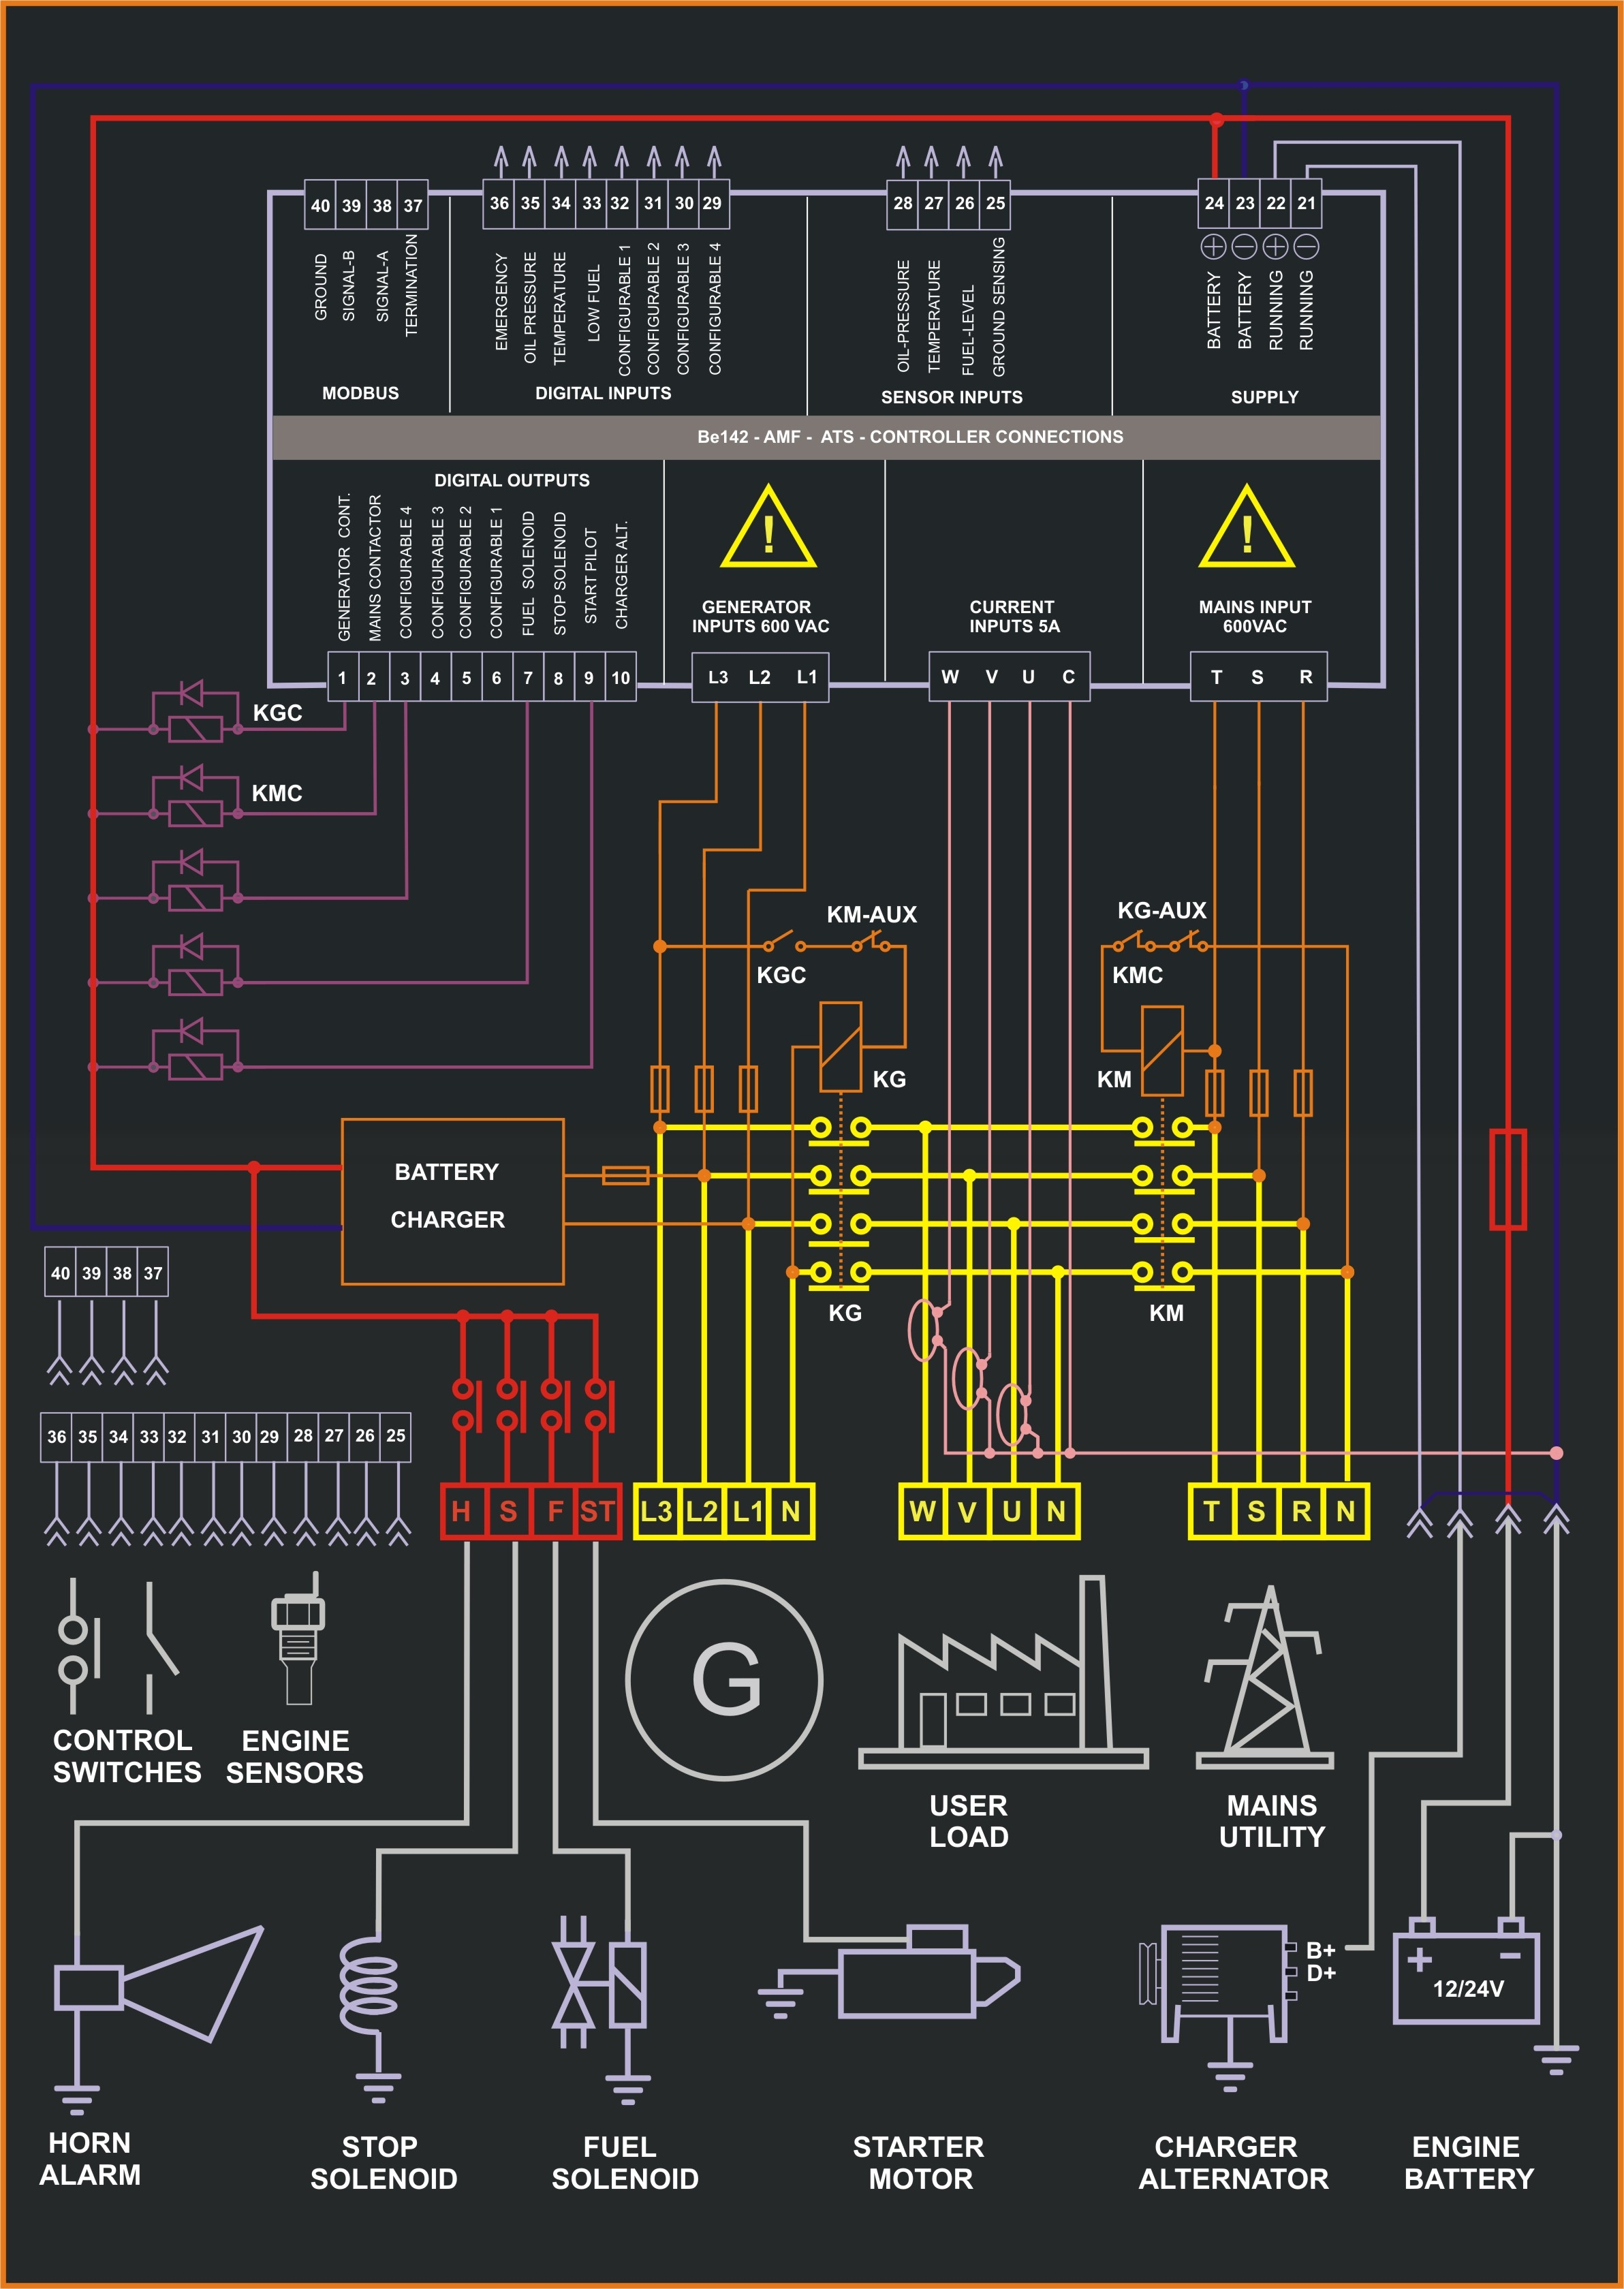 Basic control wiring diagram trusted wiring diagram control panel circuit diagram genset controller wired controller basic control wiring diagram cheapraybanclubmaster Choice Image